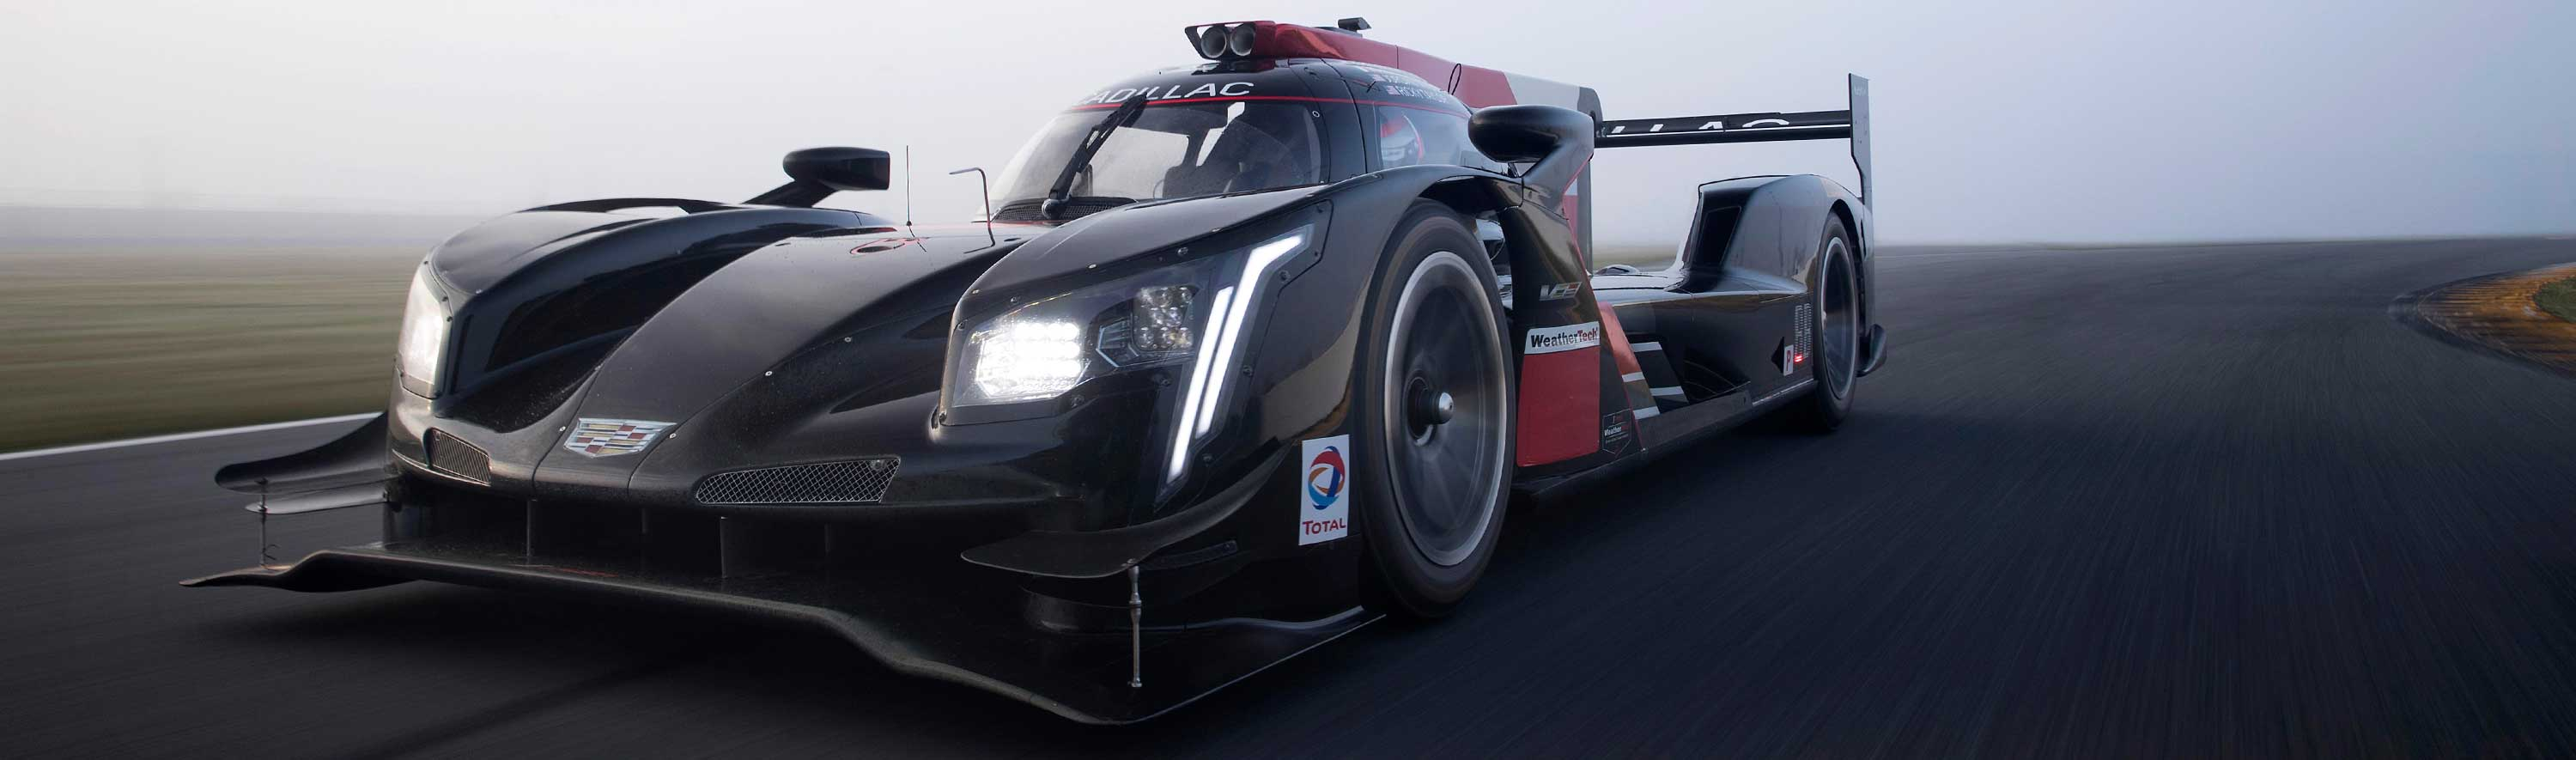 Cadillac V-Performance Racing